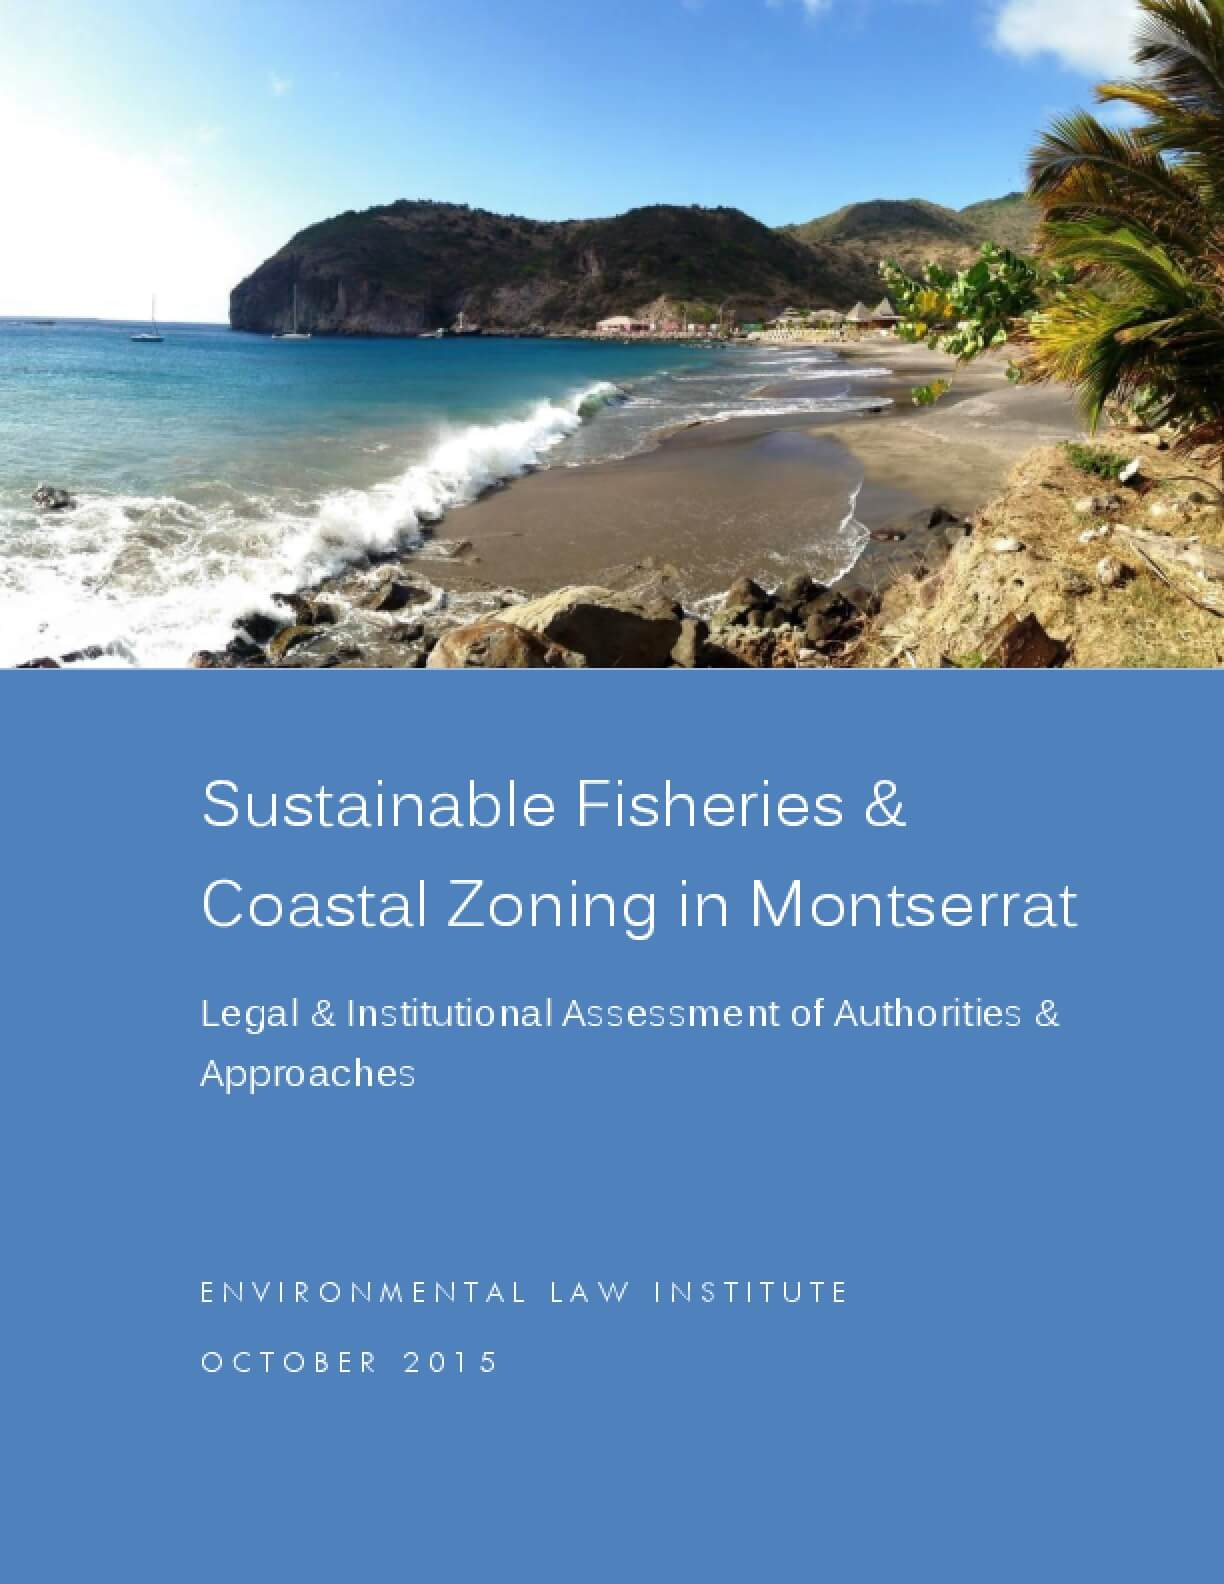 Sustainable Fisheries & Coastal Zoning in Montserrat: Legal & Institutional Assessment of Authorities & Approaches